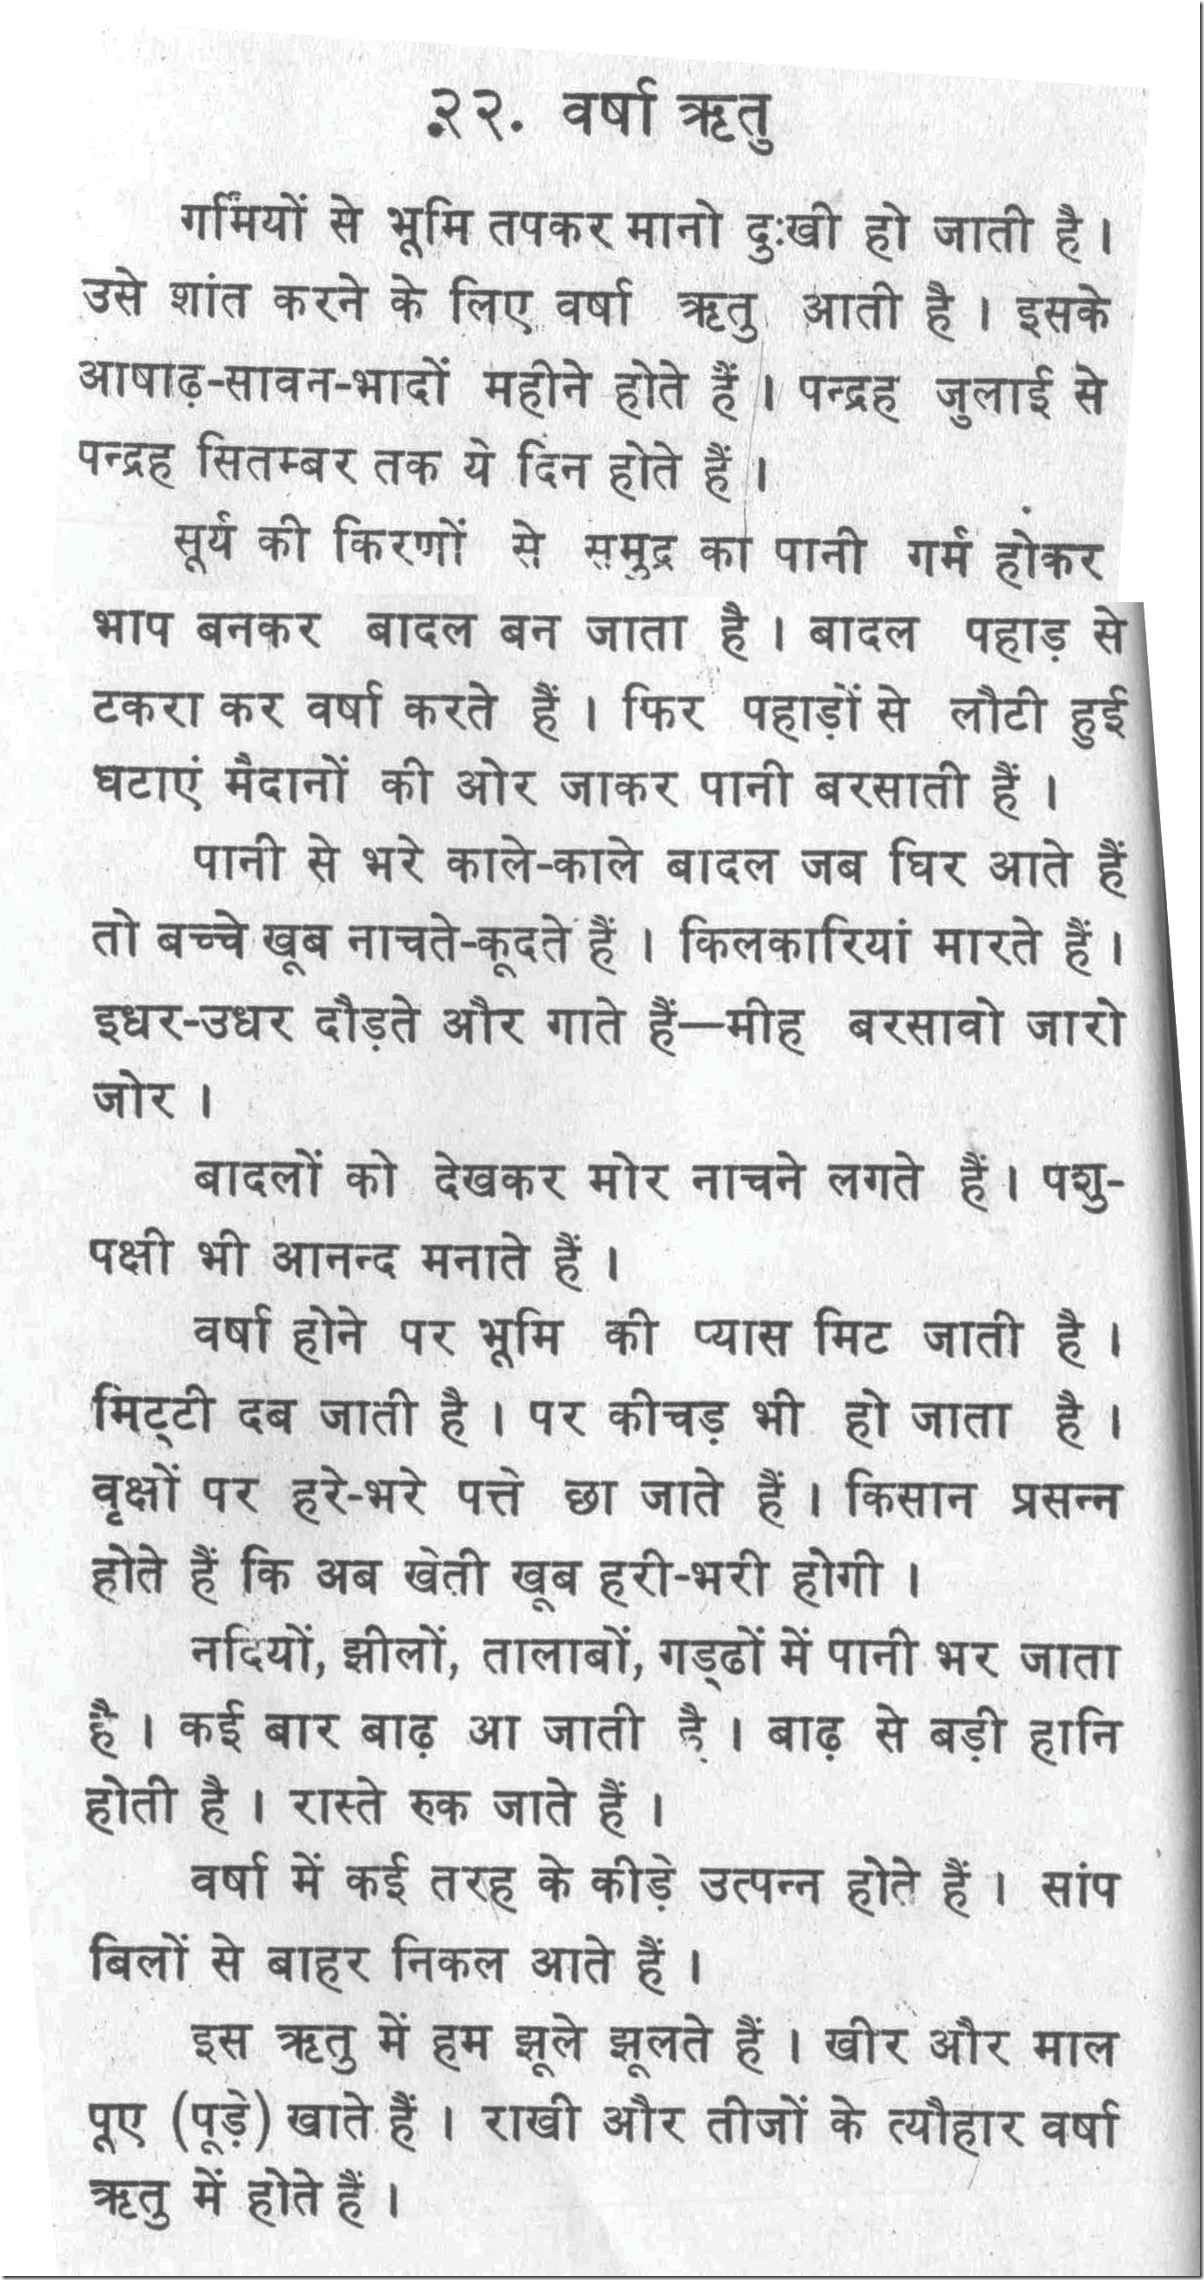 015 Summer Essay 1555027238 On Season In Hindi Unforgettable Vacation Class 2 Urdu Conclusion Full